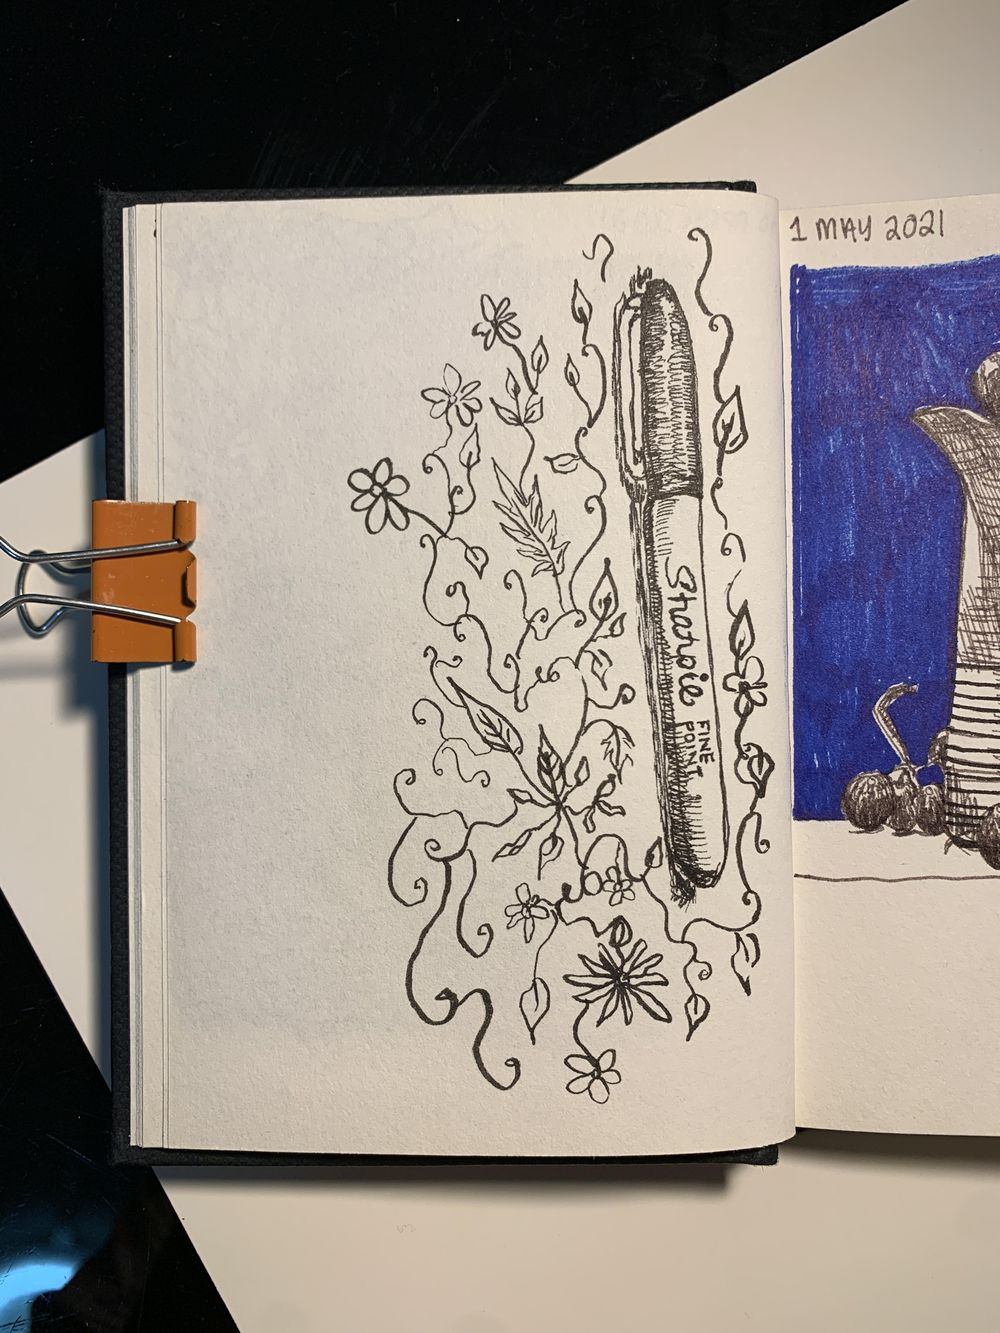 7 Days, 30 minutes of Drawing - image 7 - student project